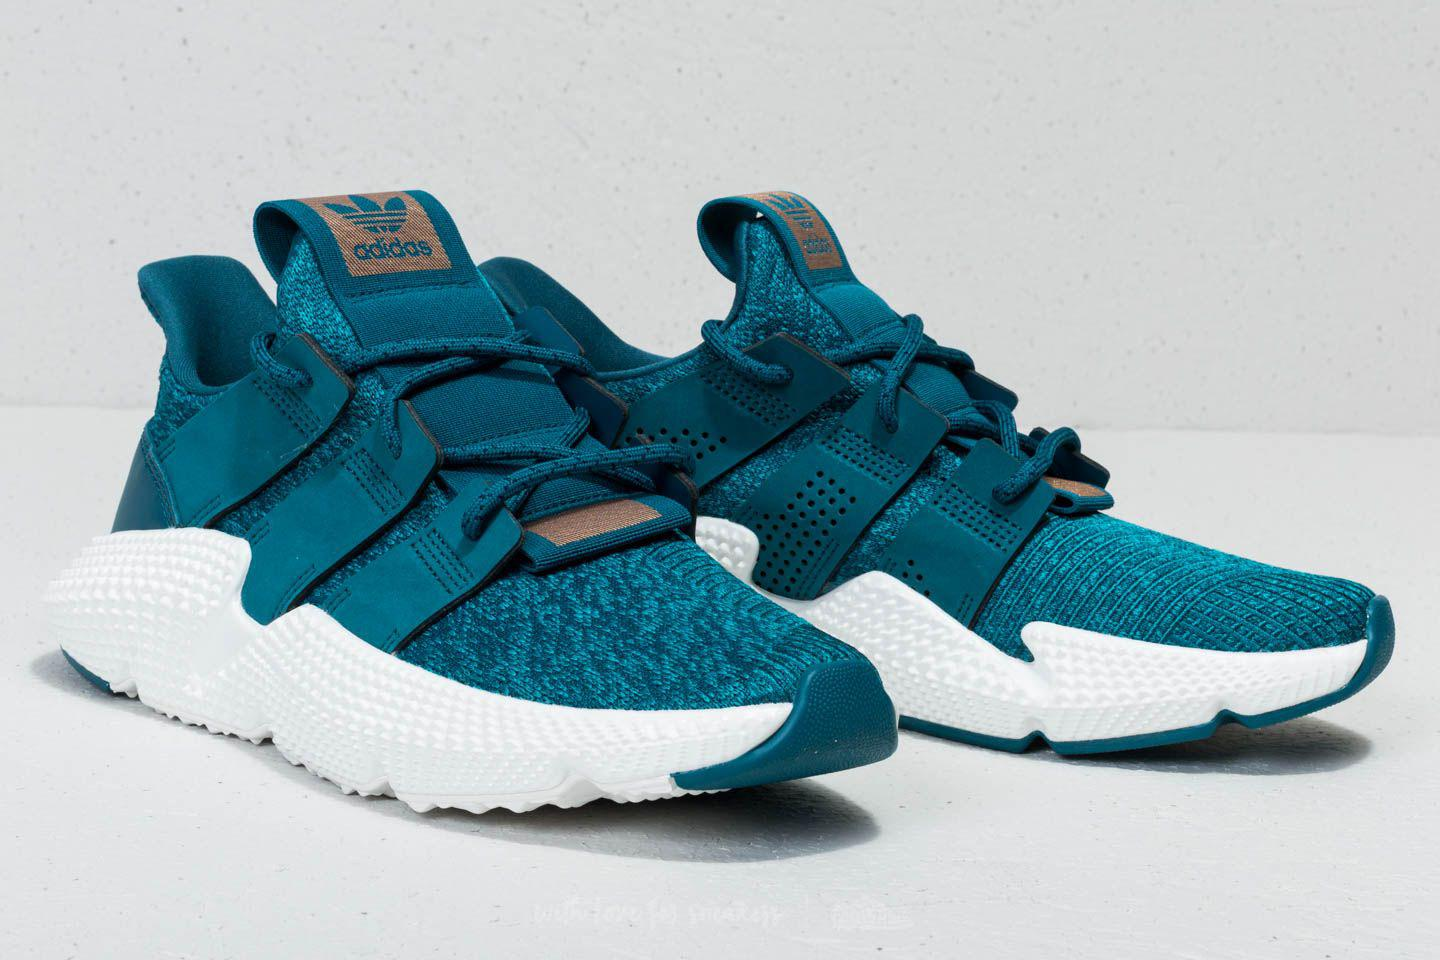 94082fc875a Lyst - adidas Originals Adidas Prophere W Real Teal  Real Teal  Ftw ...